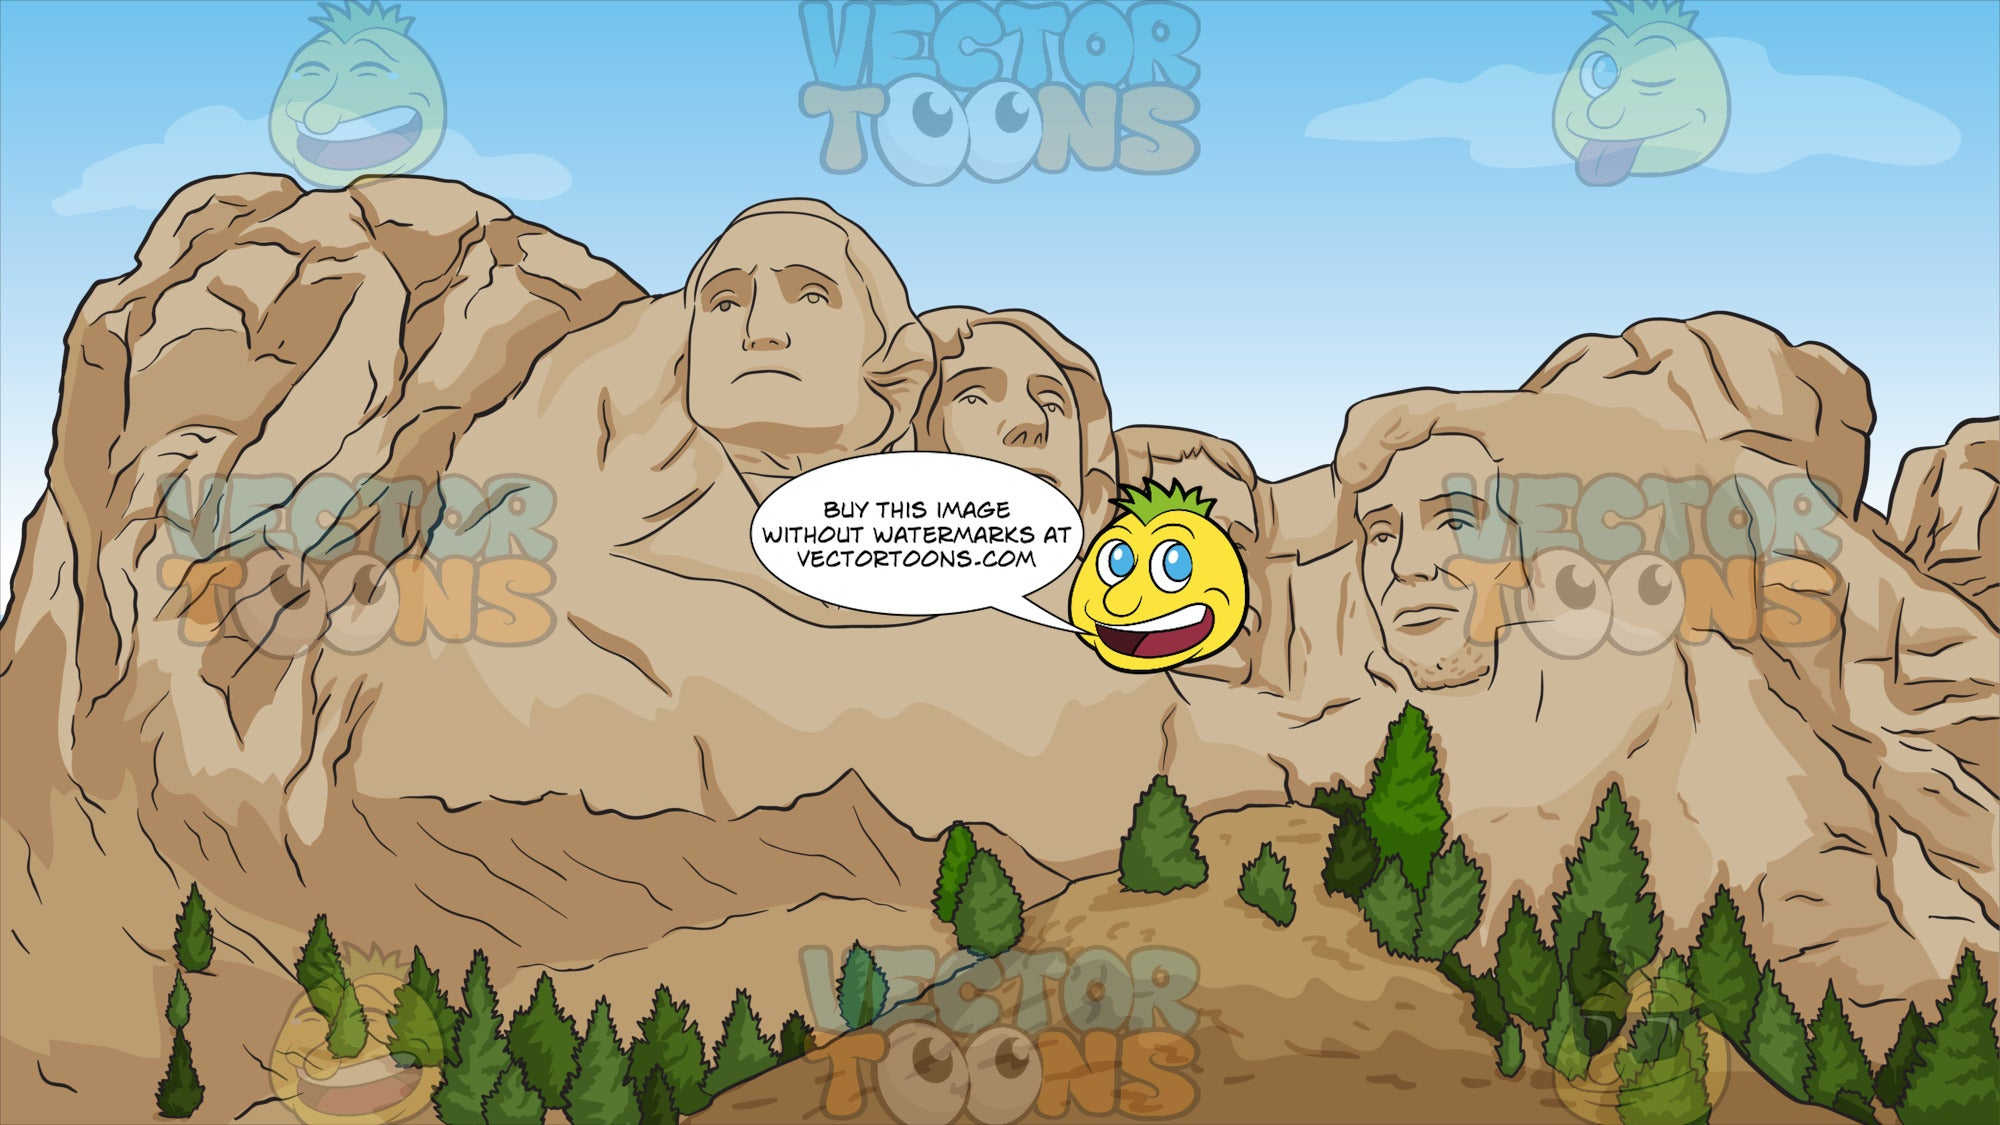 Mount Rushmore National Memorial Background. A sculpture of the heads of U.S. Presidents George Washington, Thomas Jefferson, Theodore Roosevelt, and Abraham Lincoln,carved into the granite face of Mount Rushmore